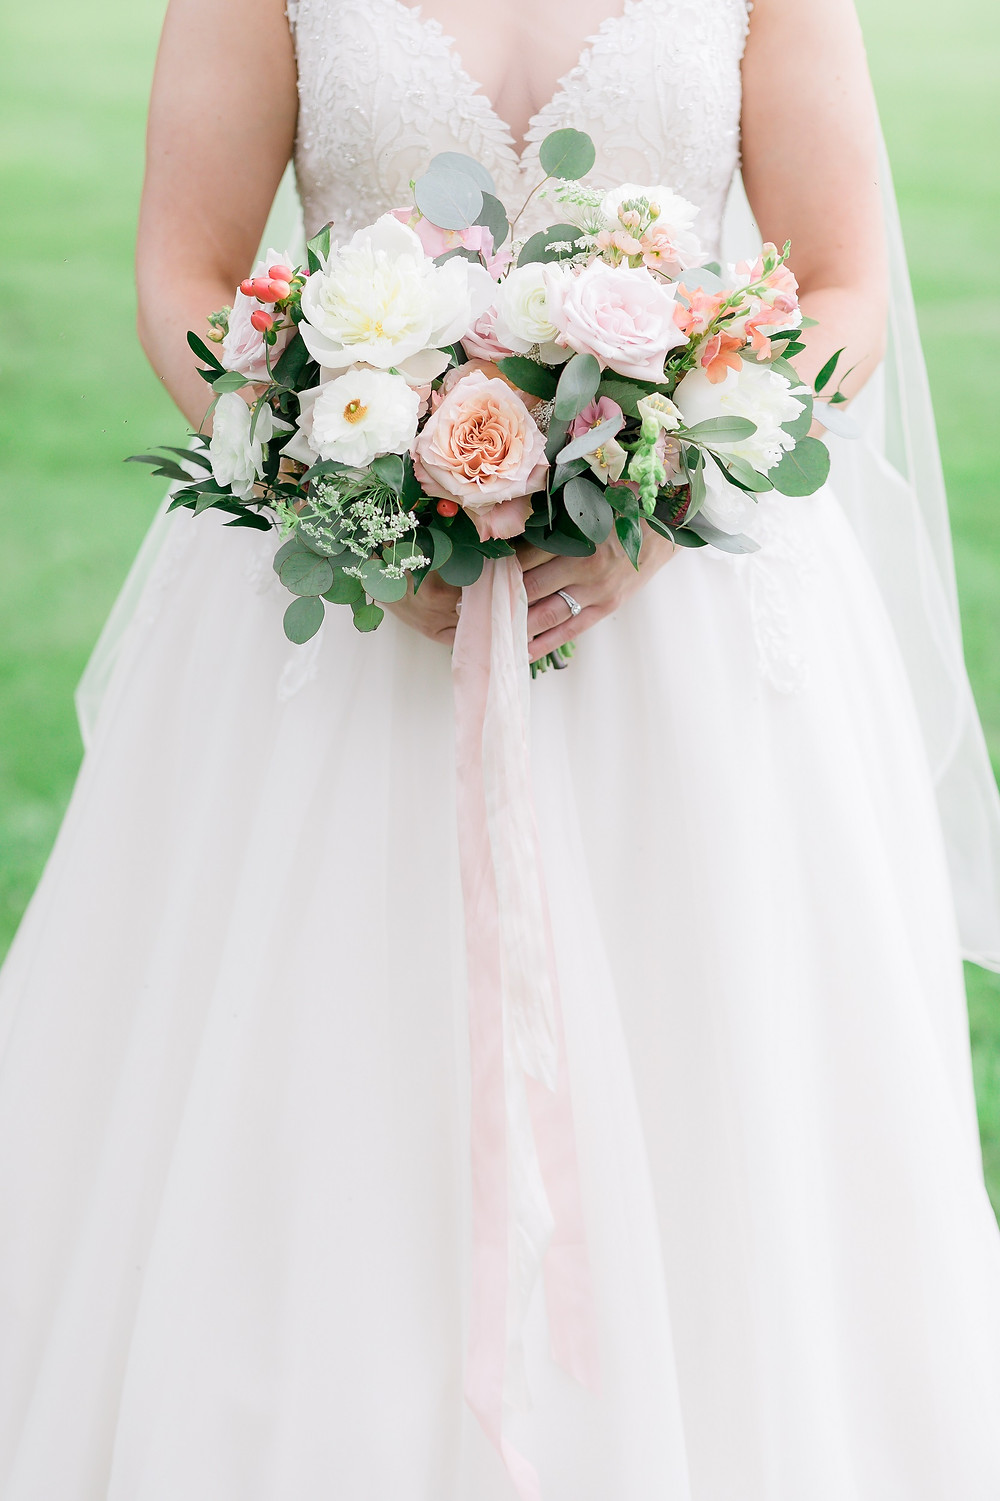 Bride holding Studio Bloom Iowa bridal bouquet in pink, peach, and white with peonies, roses, snapdragons, ranunculus, berries